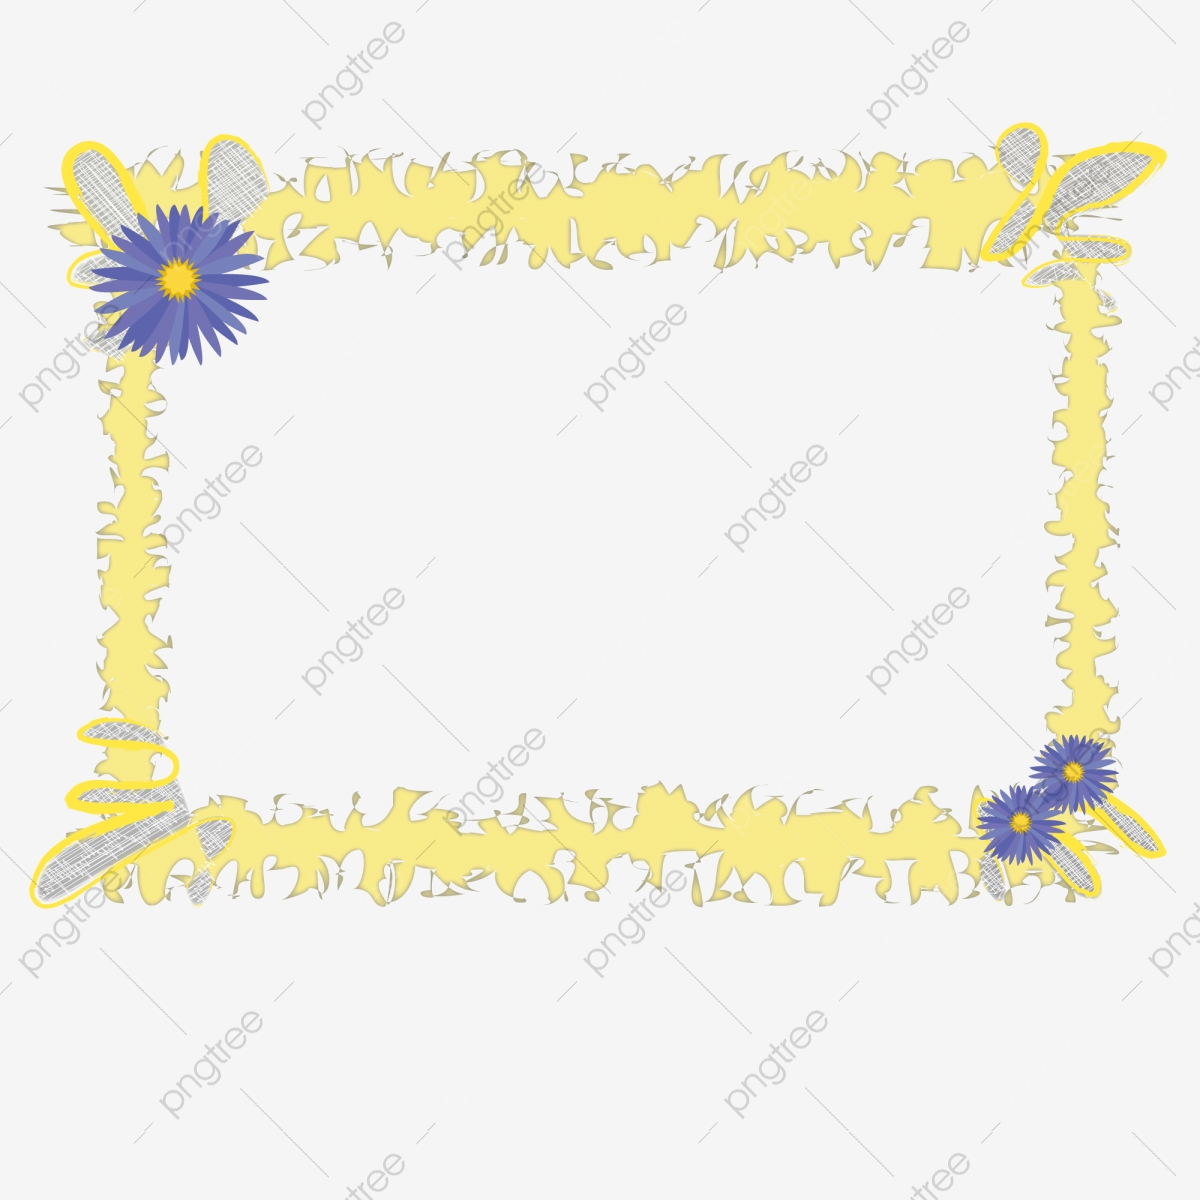 Hand Drawn Cartoon Borders And Flowers Free Illustration Cartoon Border And Blue Flowers Beautiful Border Cartoon Illustration Png And Vector With Transparent Background For Free Download